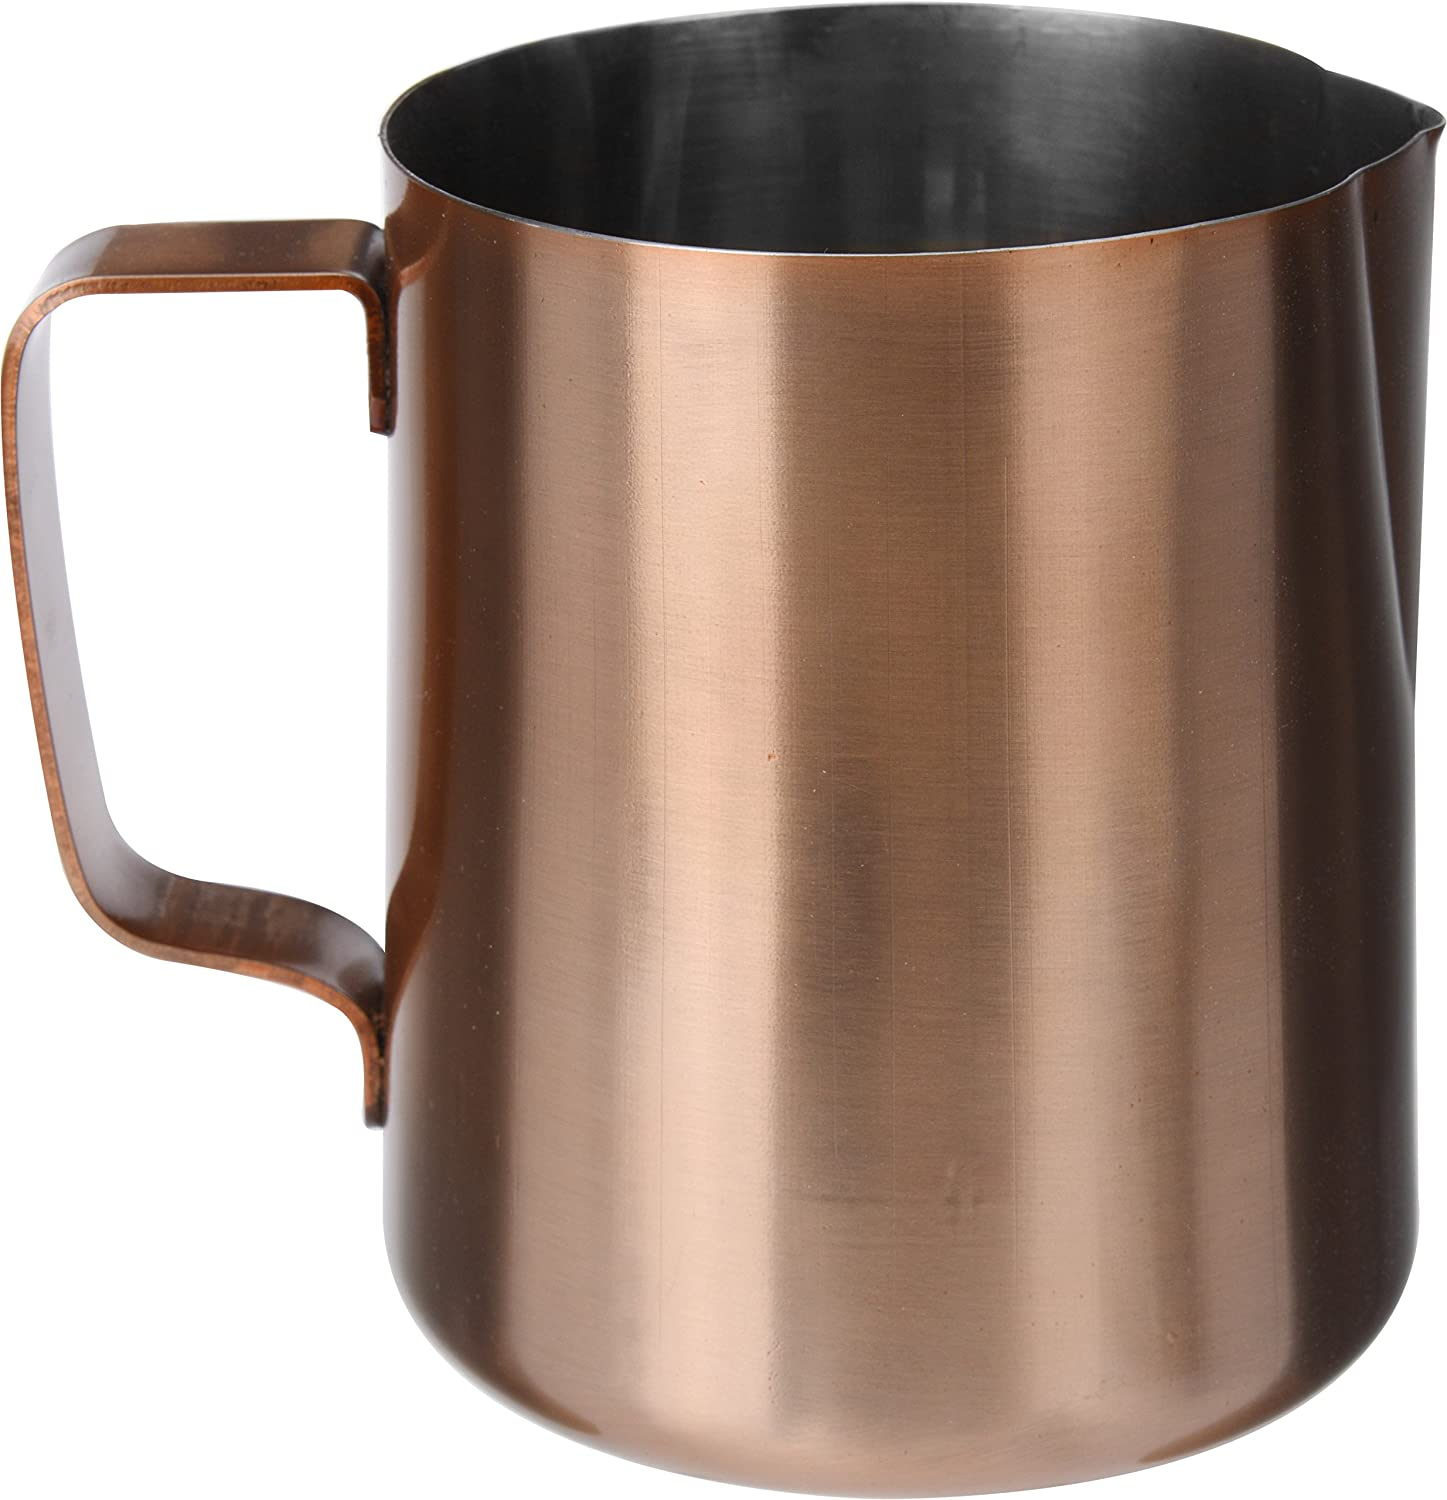 500ml Cappuccino Latte Milk Frothing Jug Pitcher Copper Finish